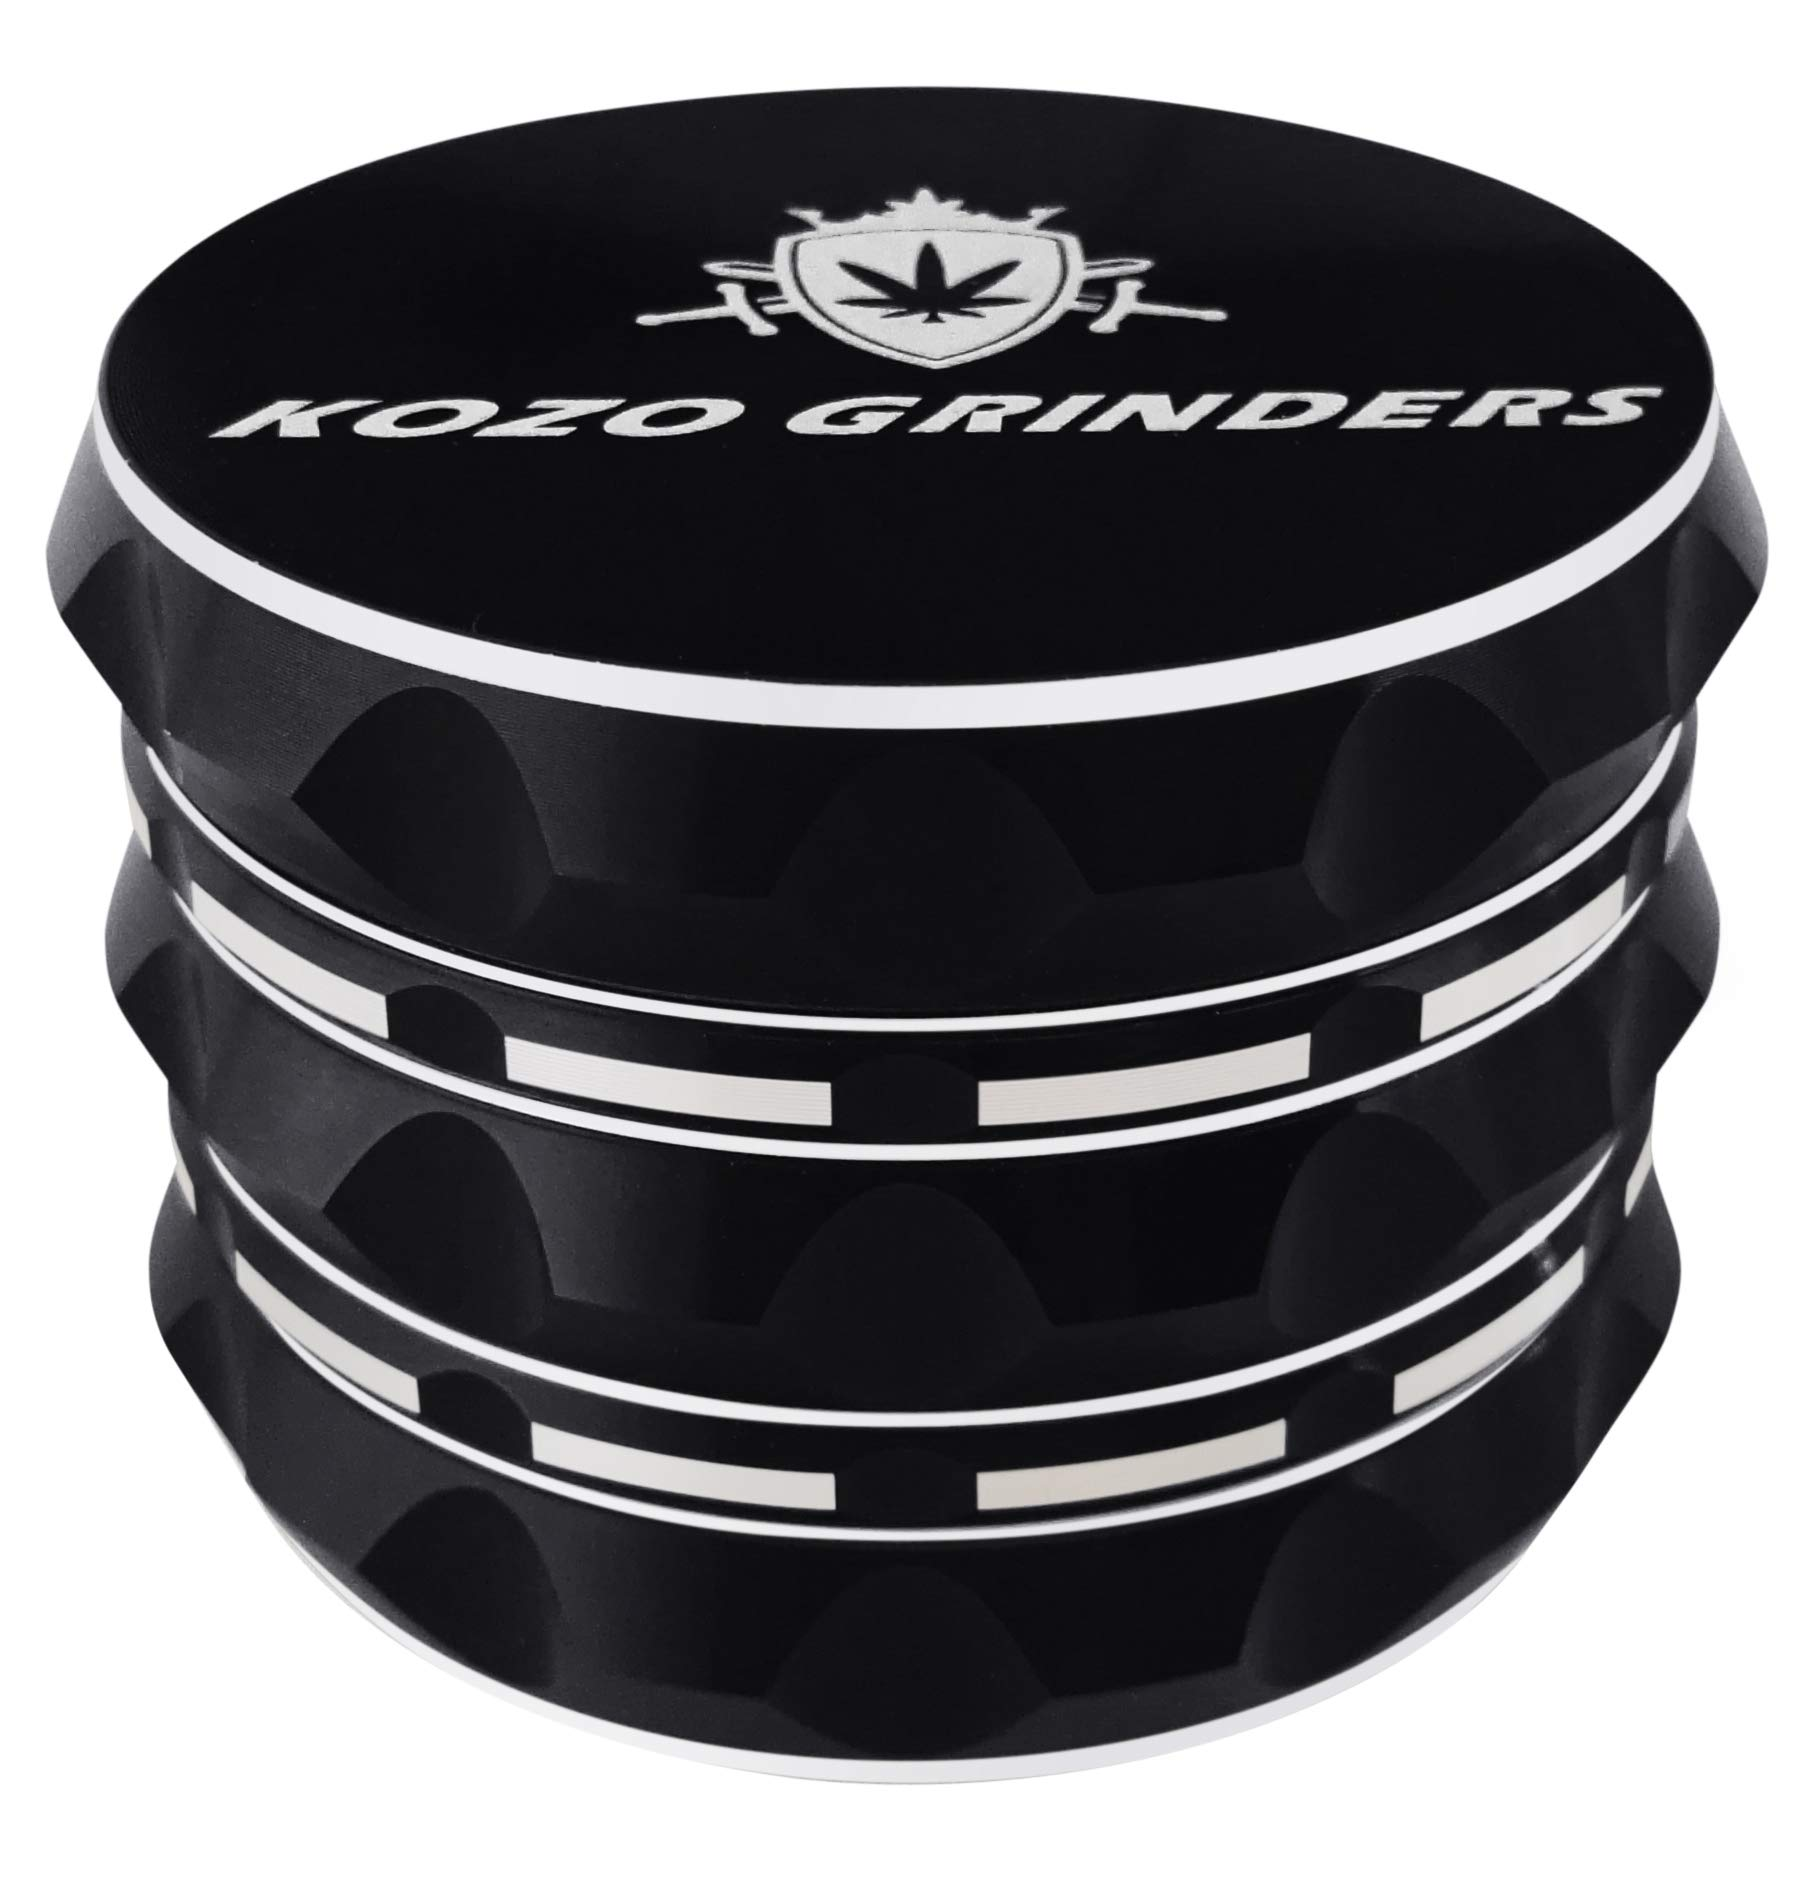 Kozo Grinders [Upgraded Version] Best Herb Large 4 Piece, 2.5'' Black Aluminium